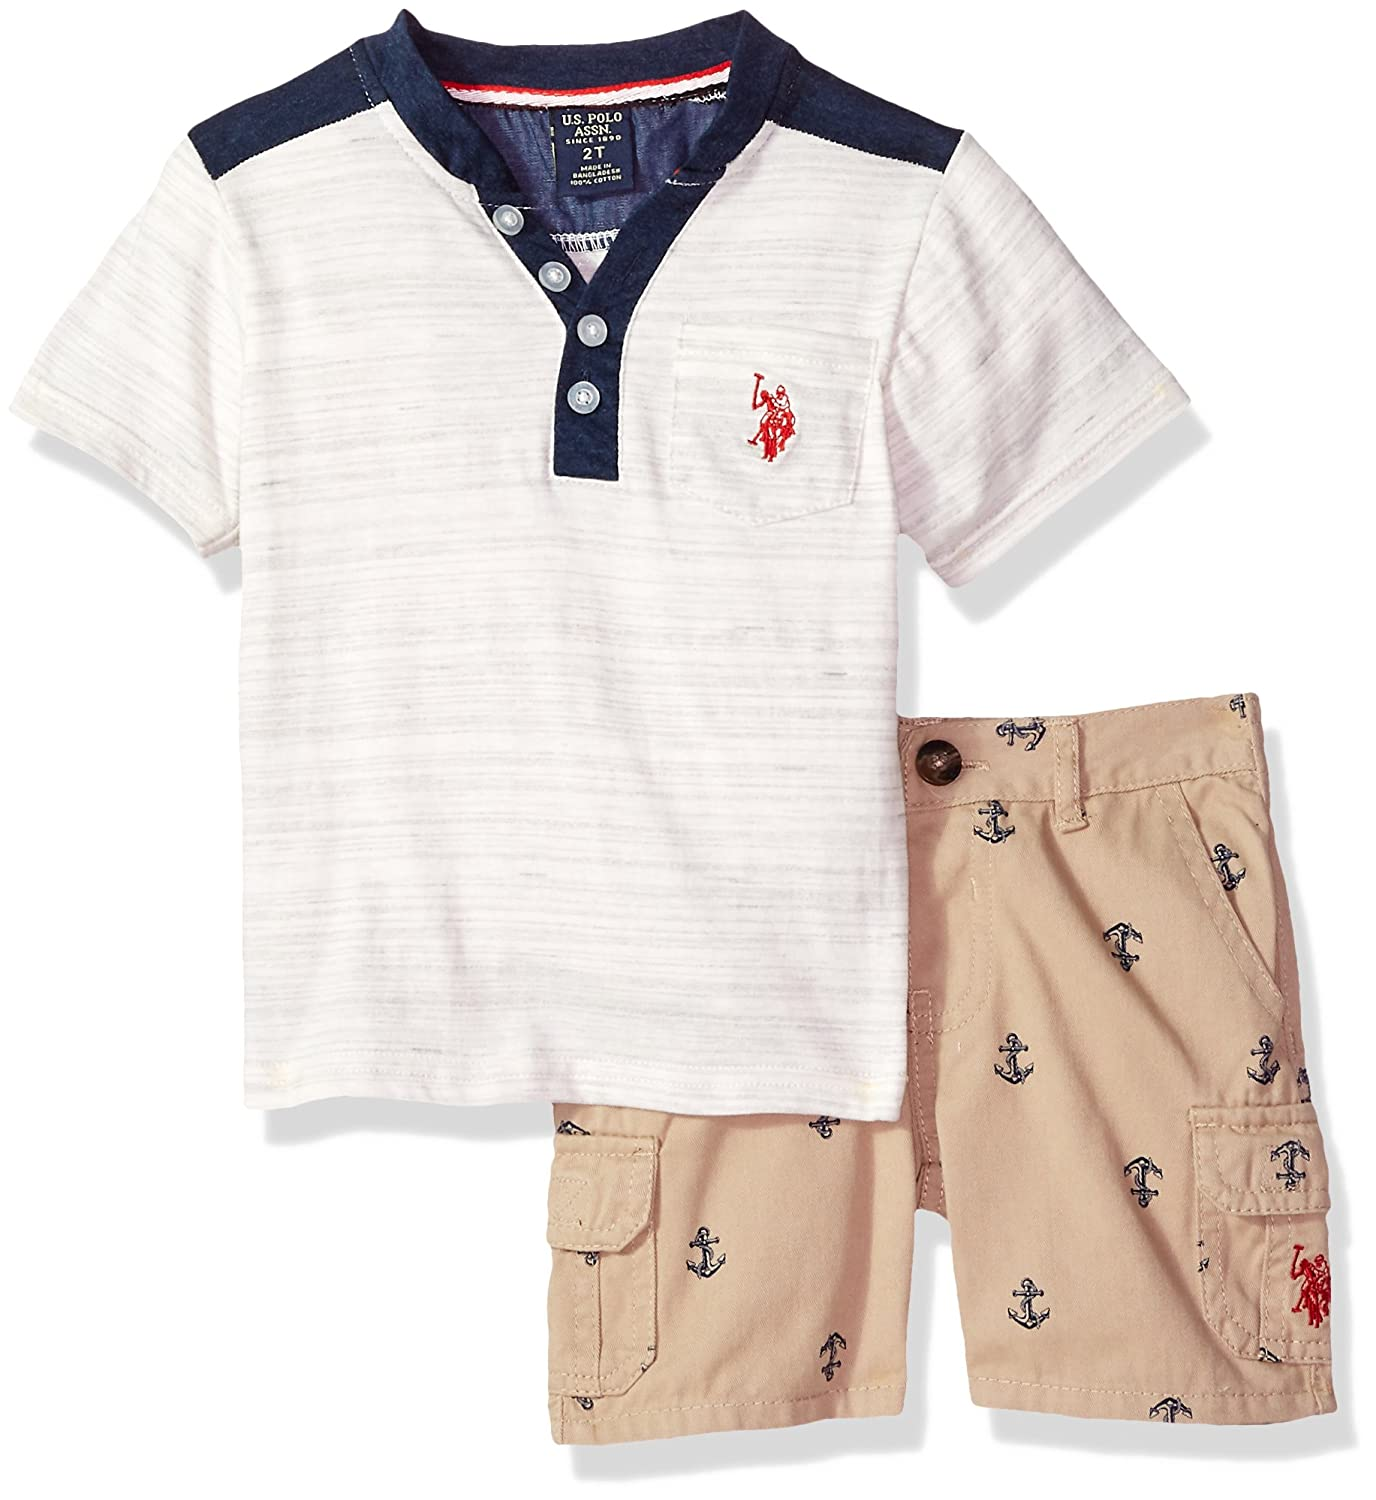 Boys T-Shirt and Short Set Polo Assn U.S